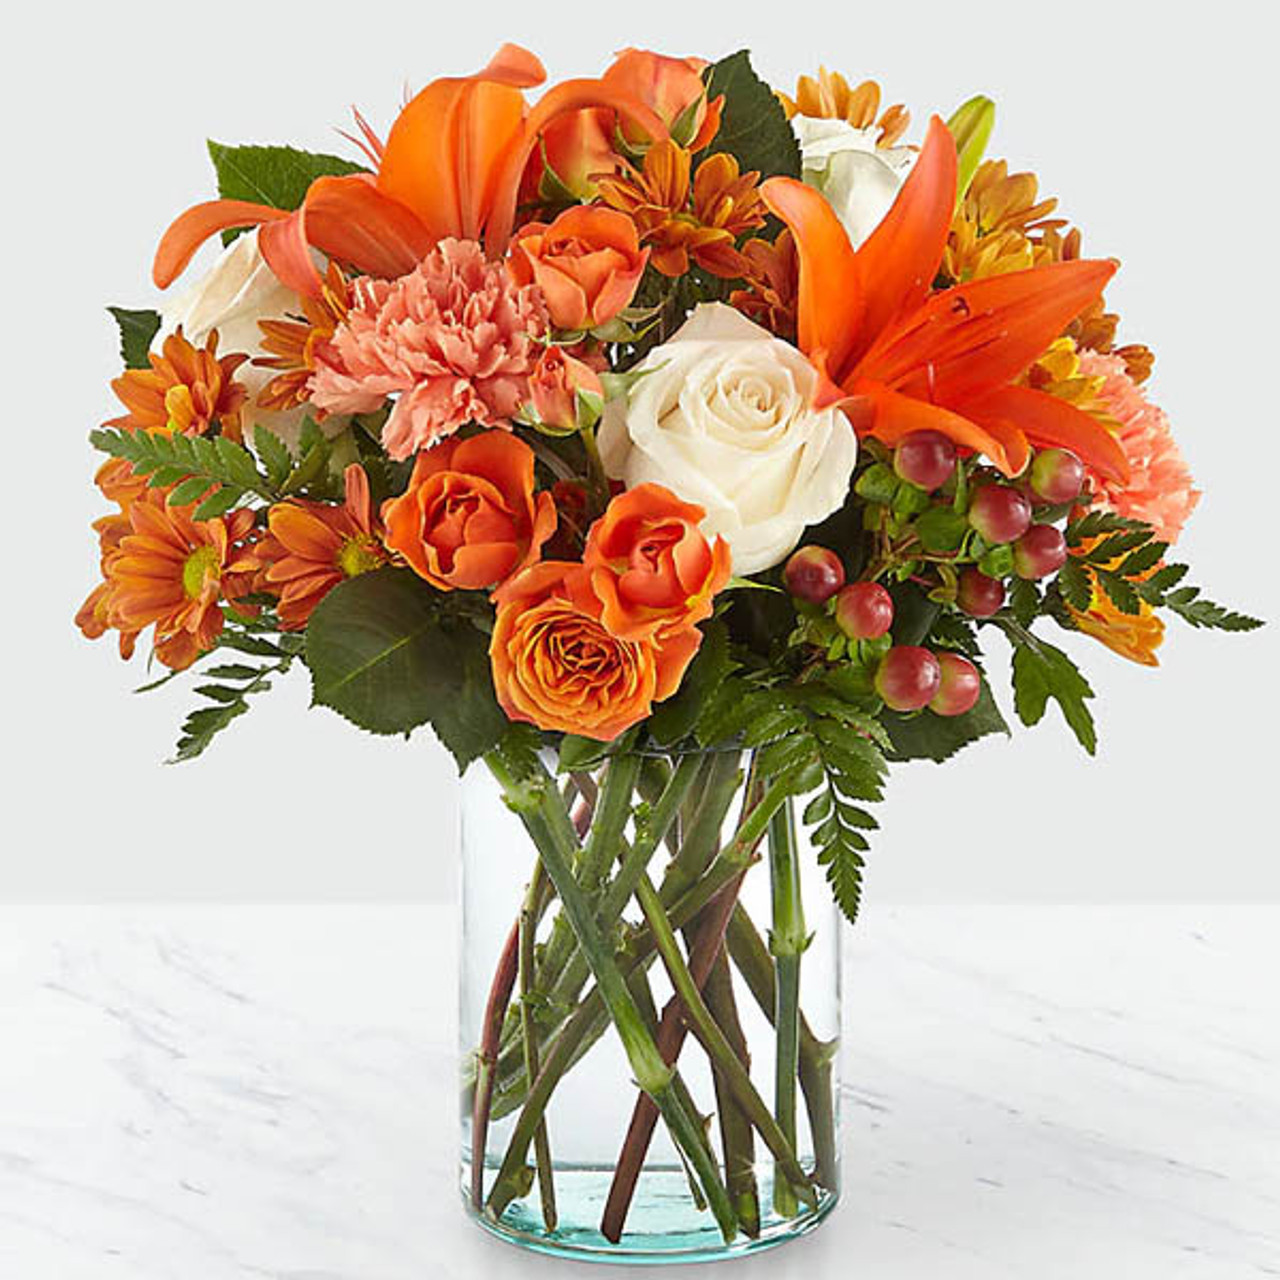 Falling For Autumn Bouquet Flower Den Florist Same Day Flower Delivery In Northern Virginia